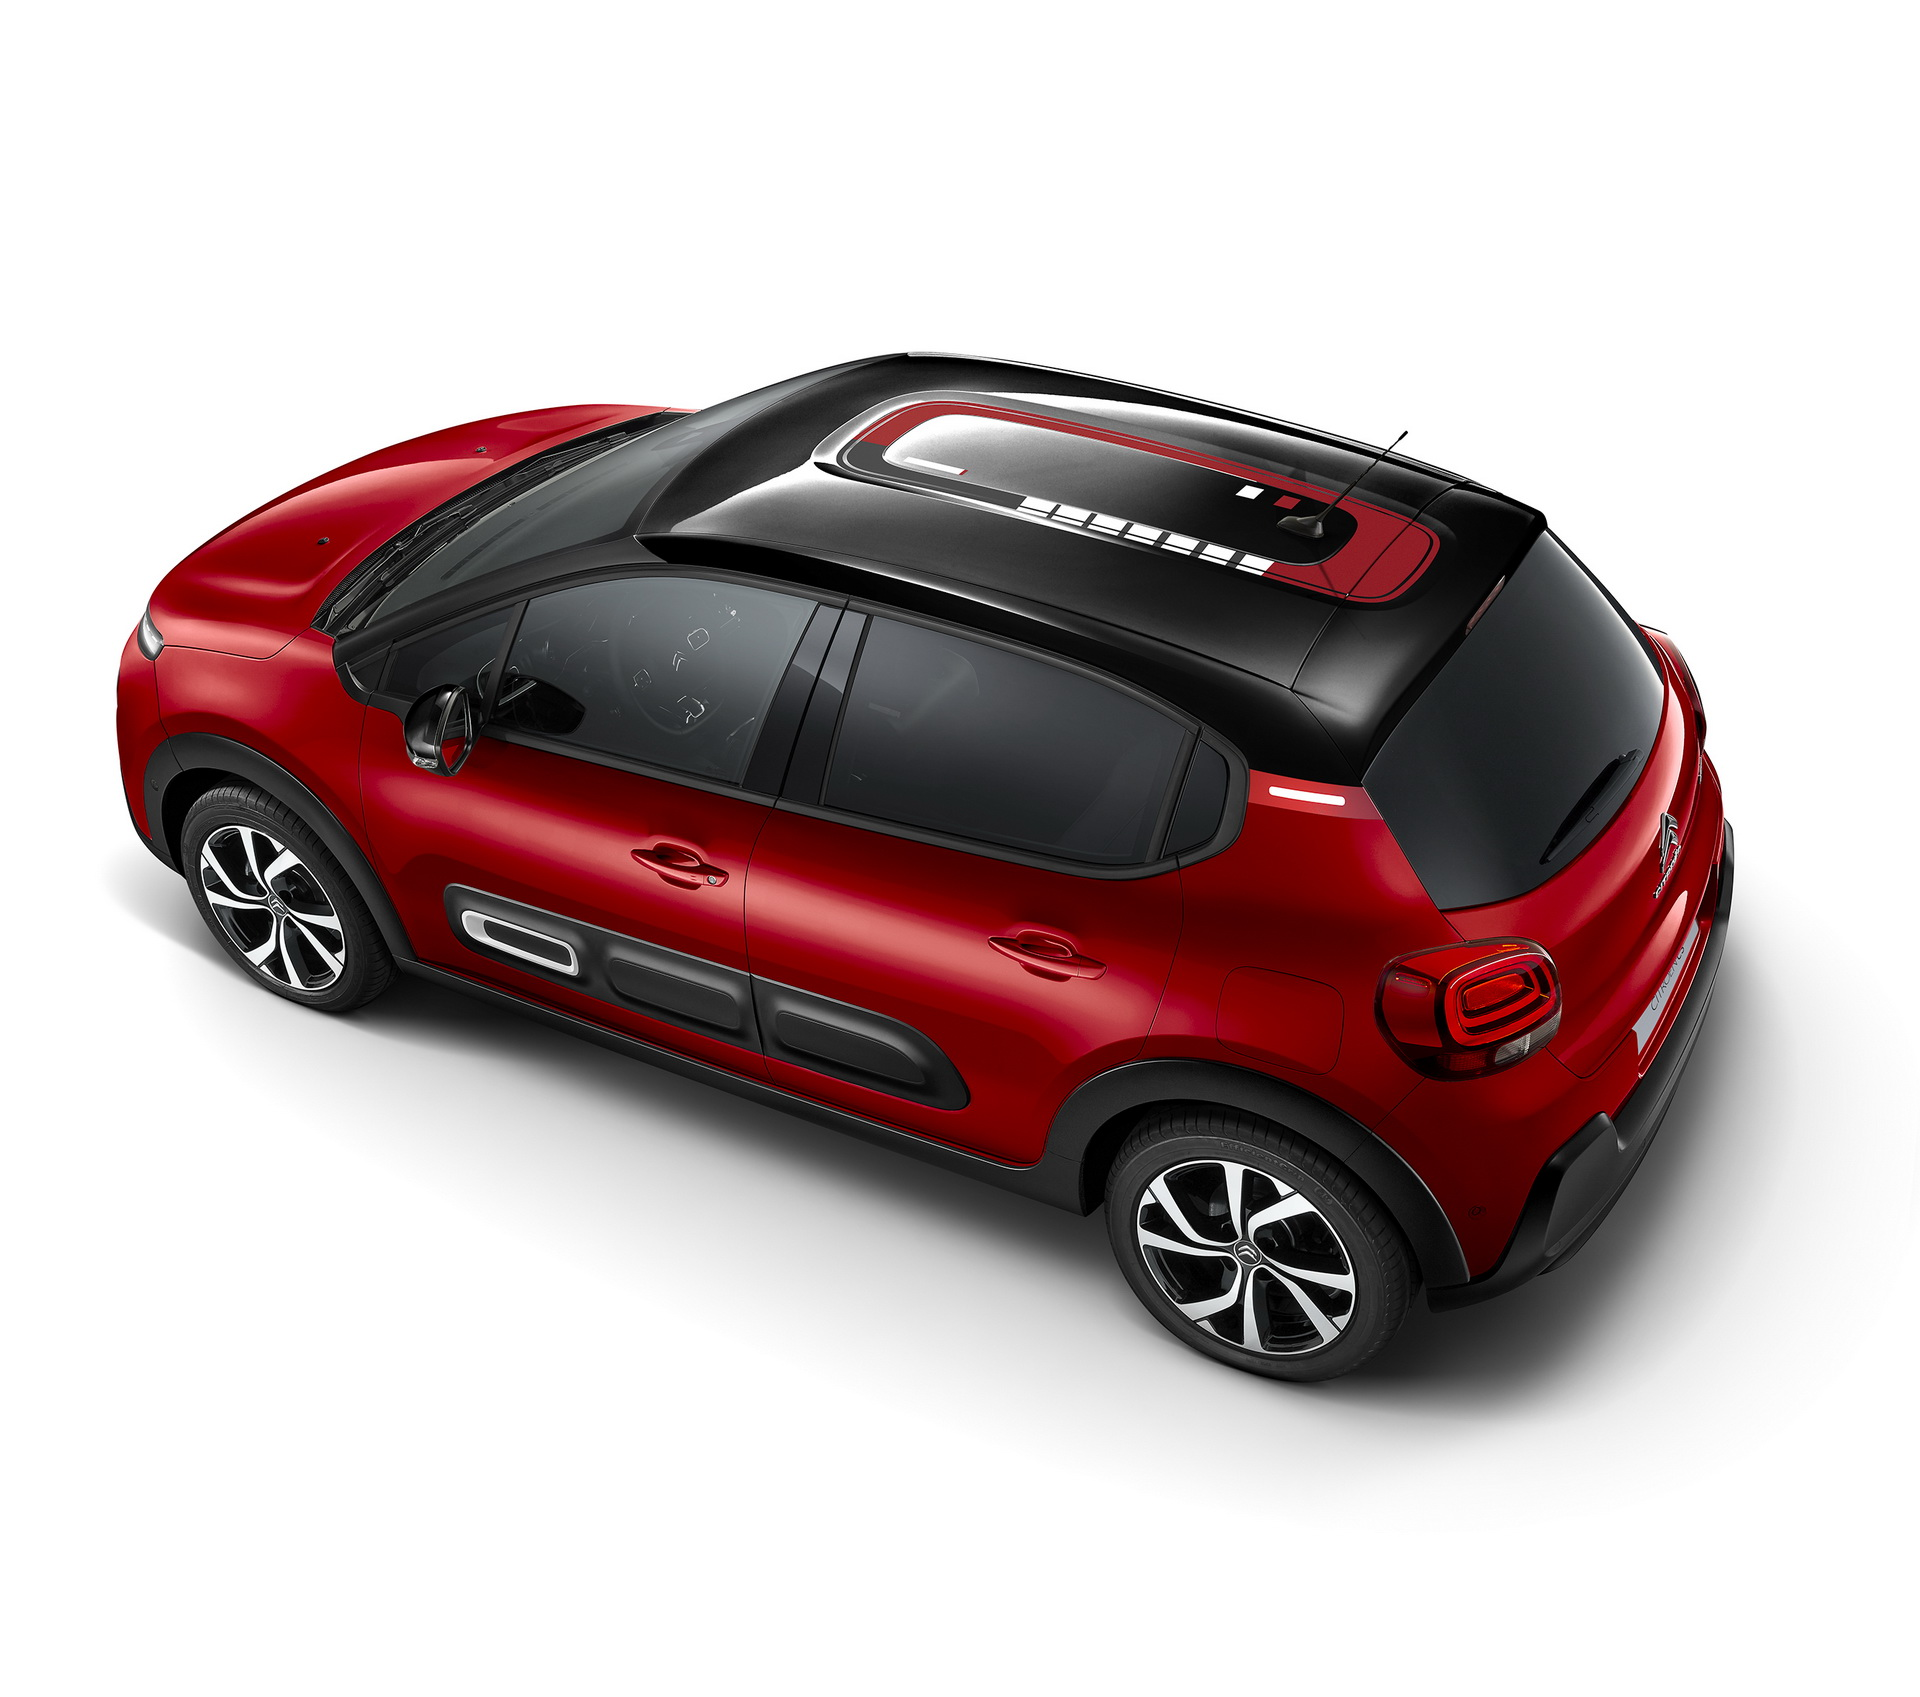 Citroen C3 2020 facelift